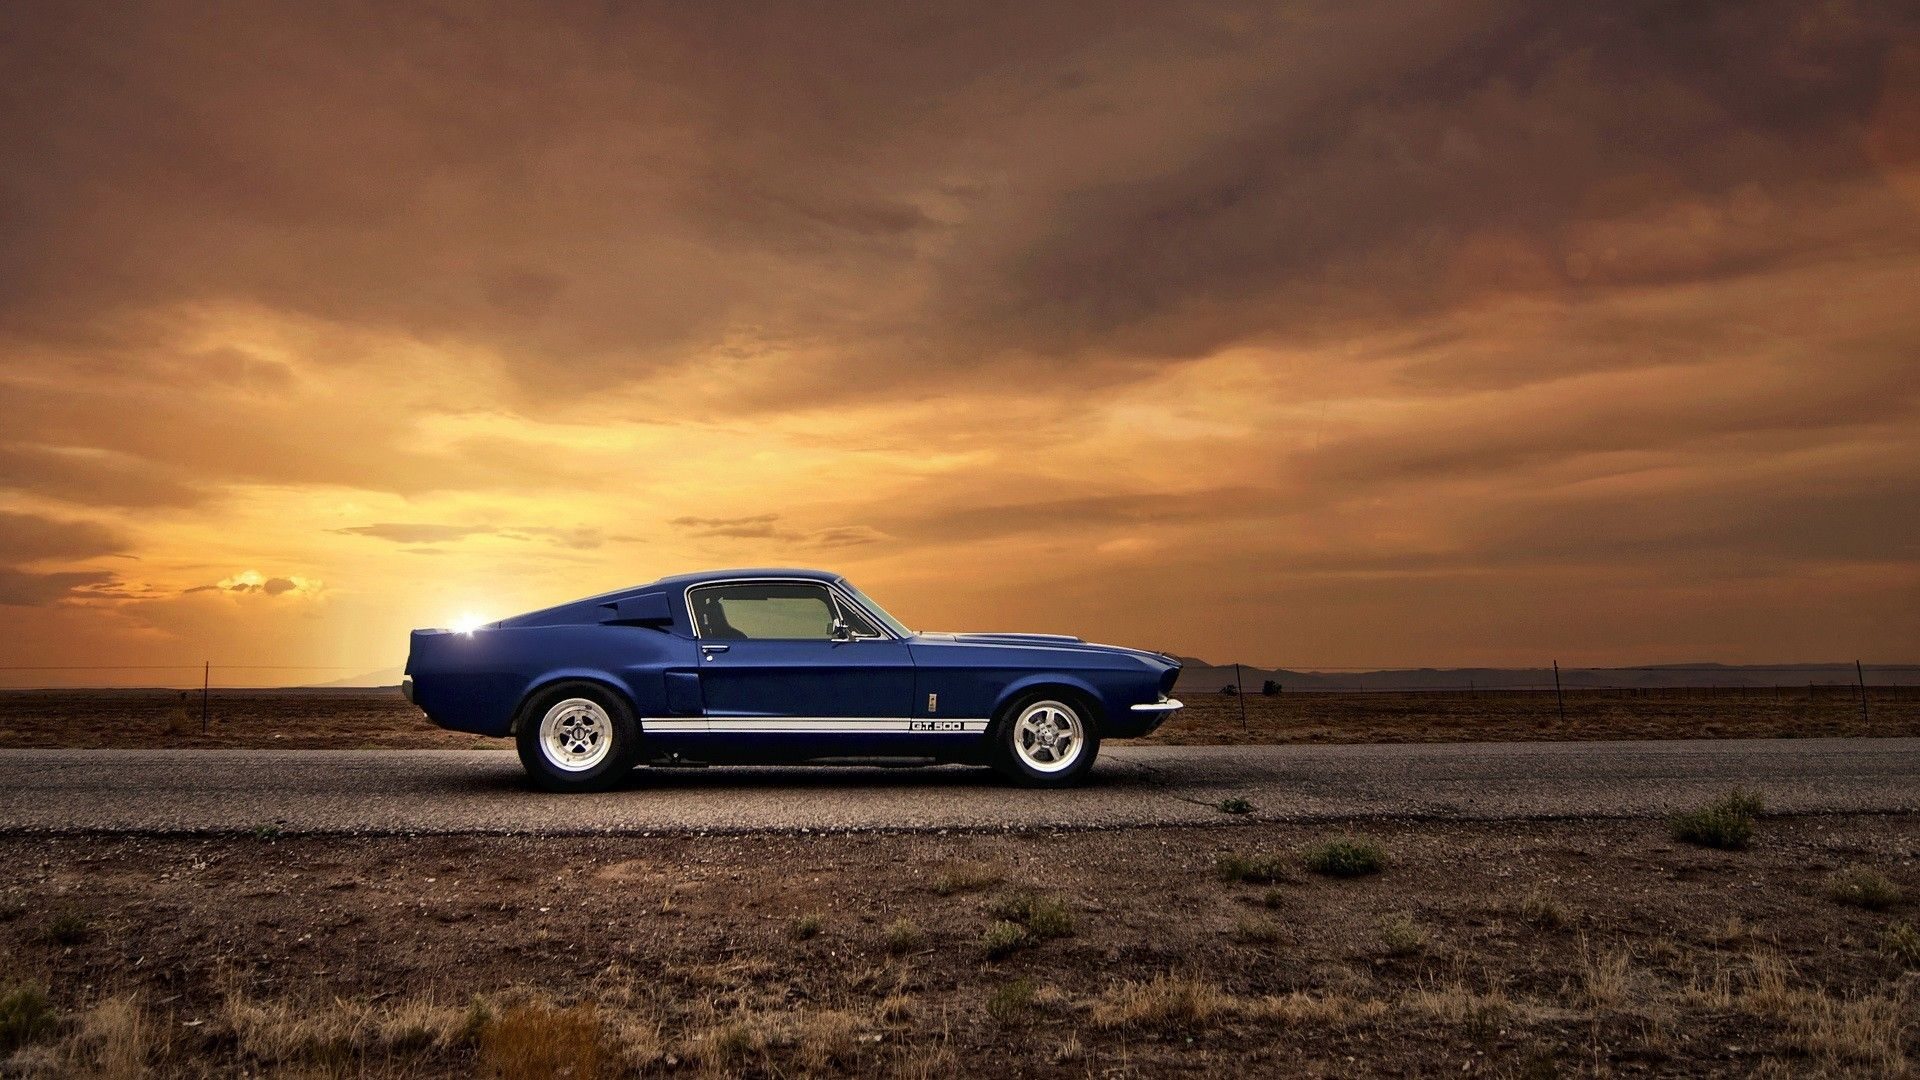 American Muscle Cars Mustang Muscle Cars Mustang Muscle Cars